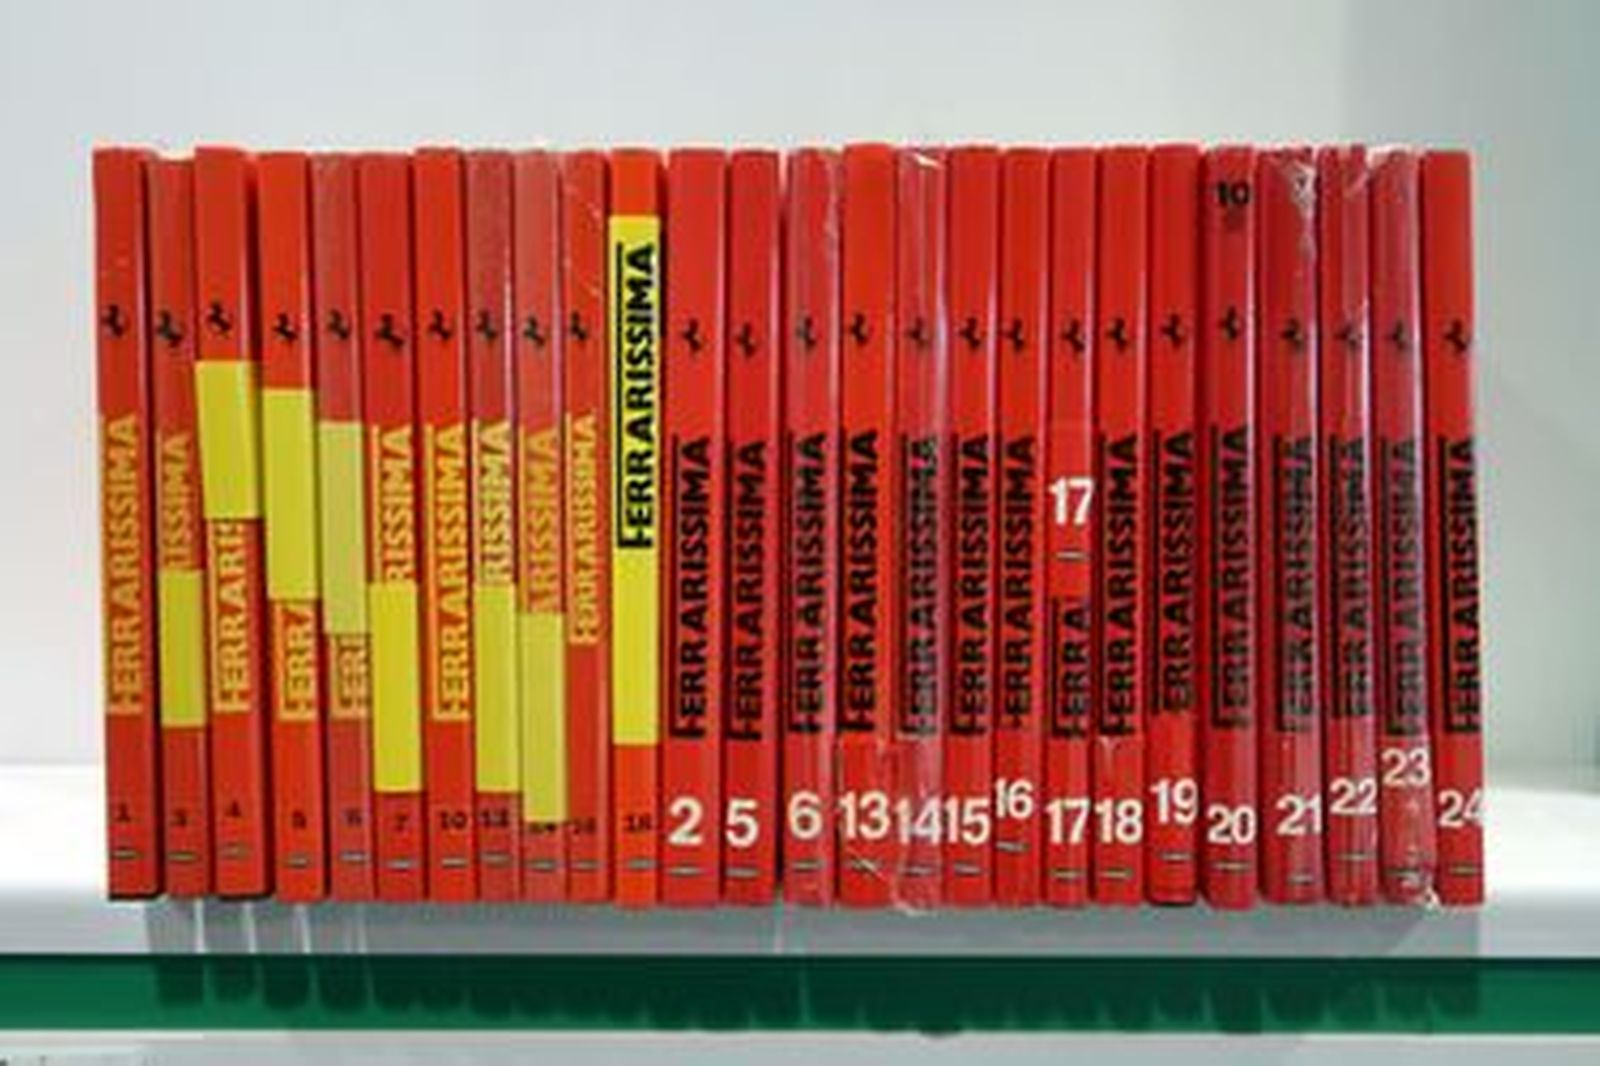 Ferrari 360 Factory Battery Charger In Leather Case & Ferrarissima Book Collection (26 Books)